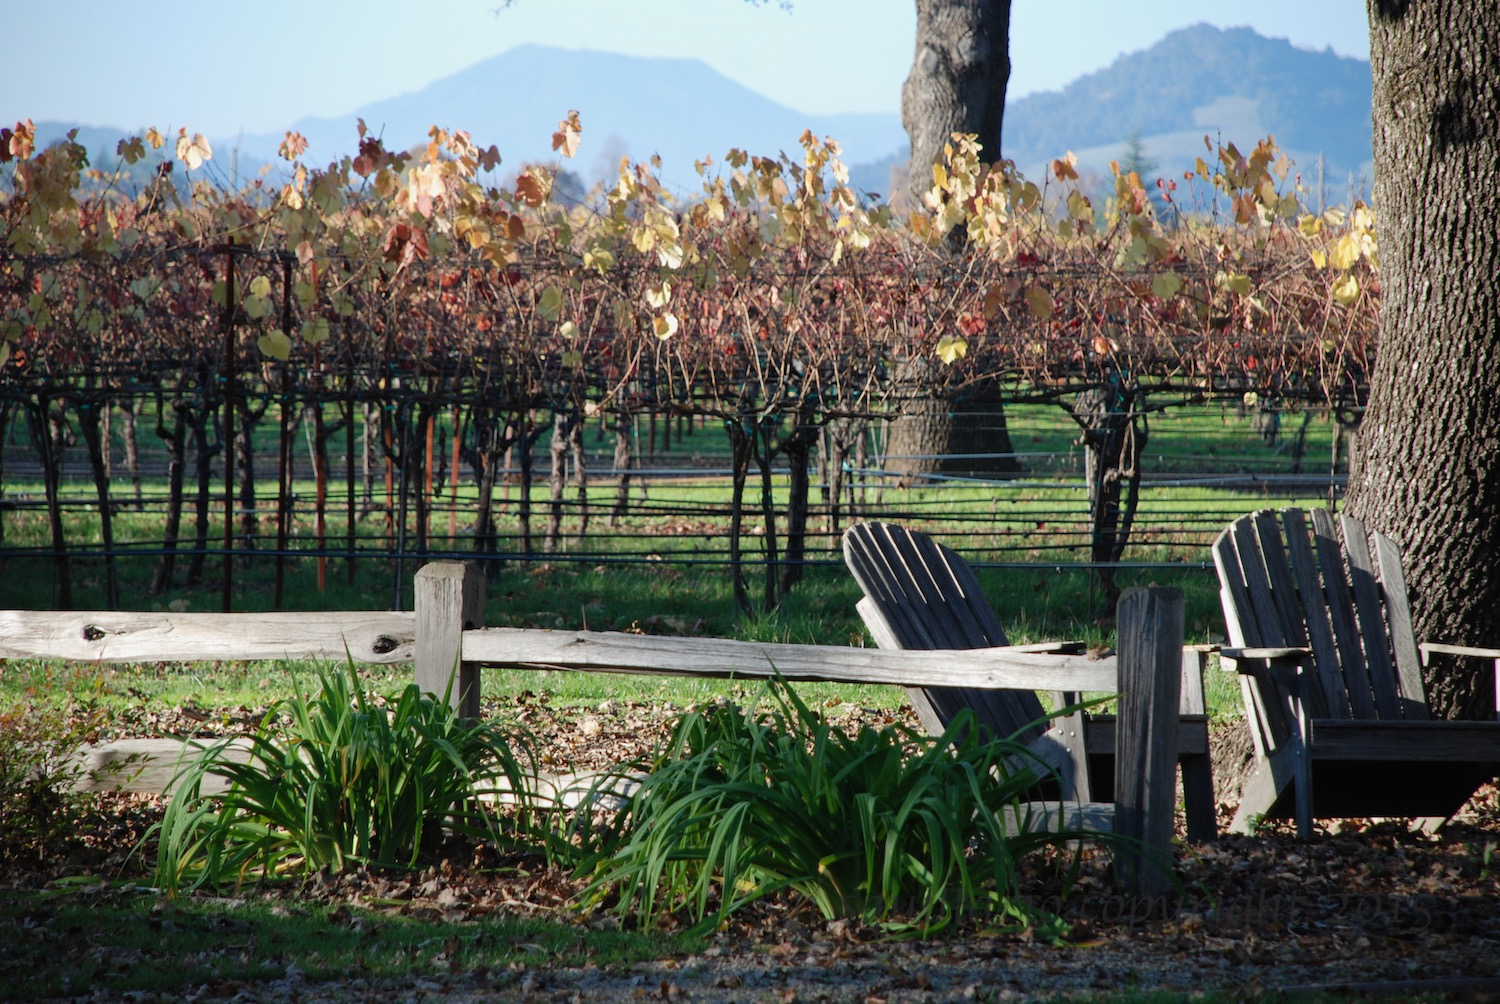 Fall at a Winery (2008)